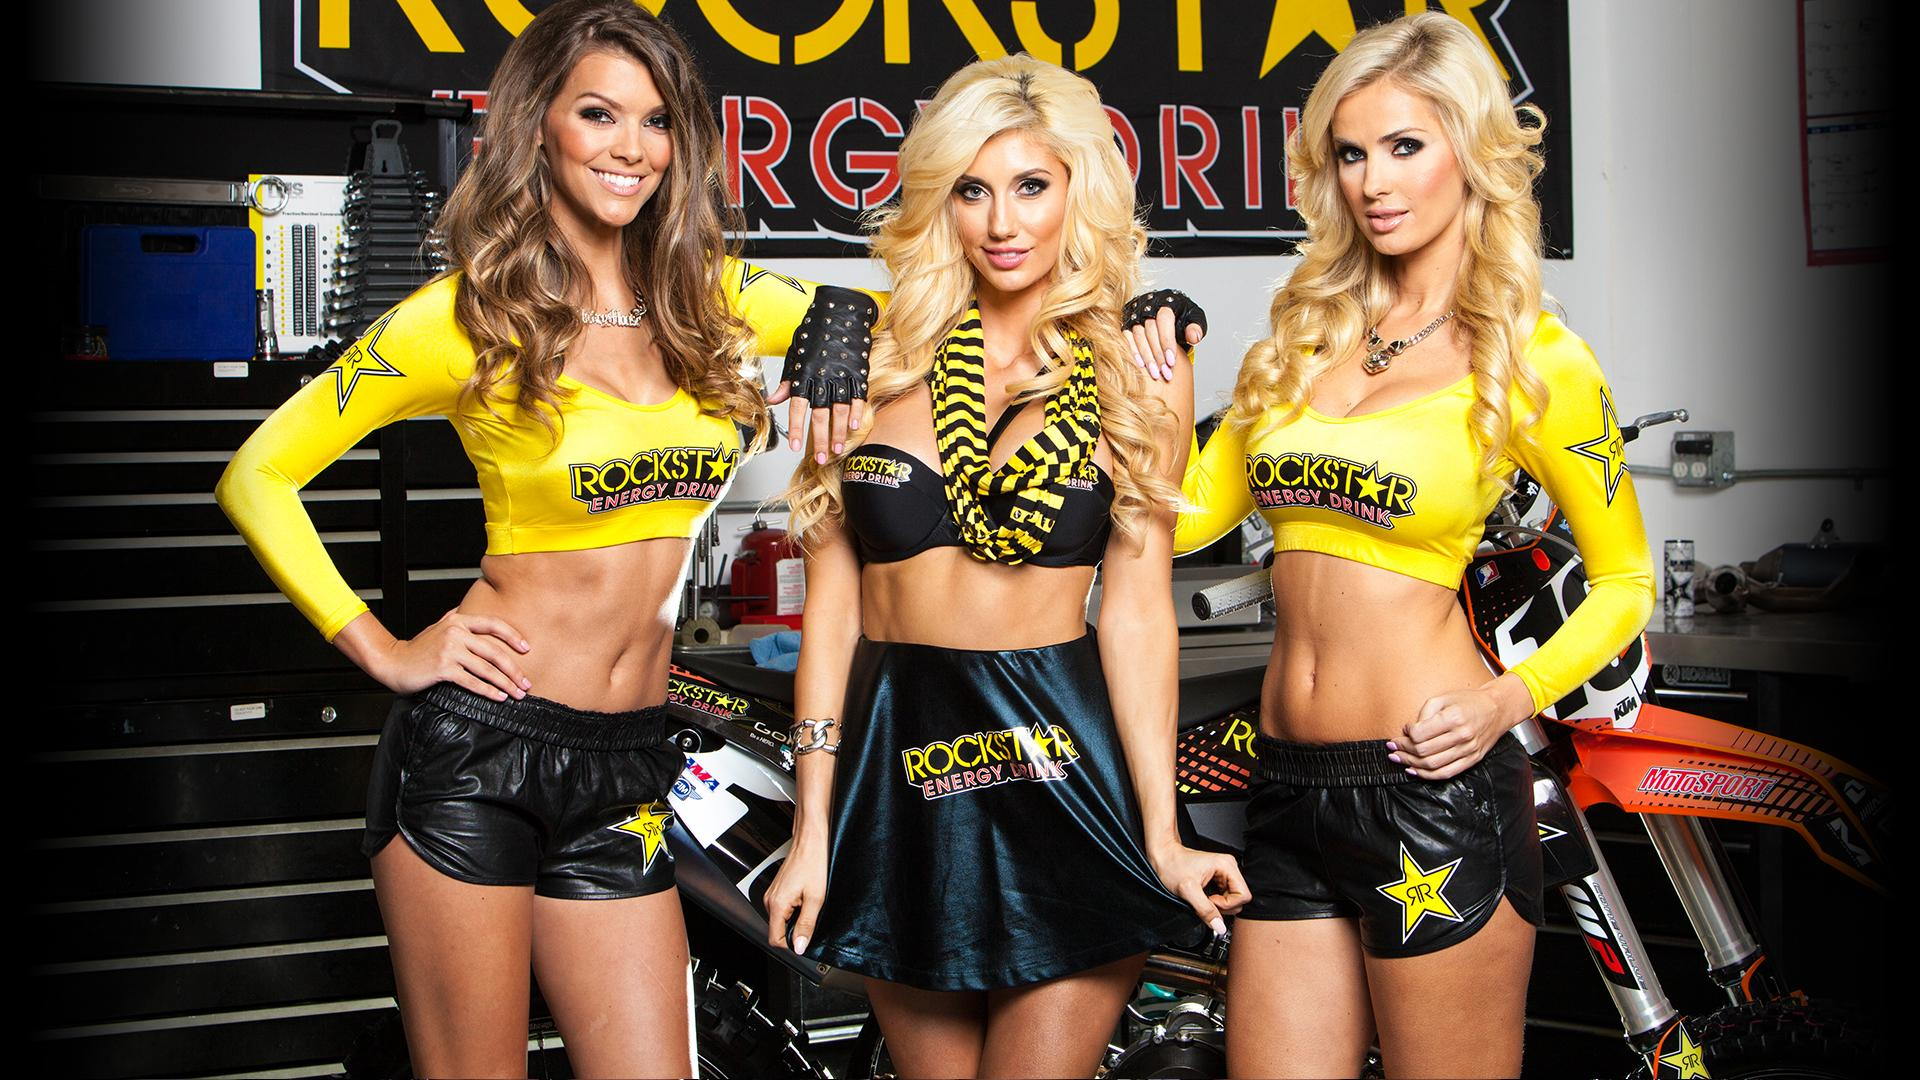 Supercross girls energy rockstar